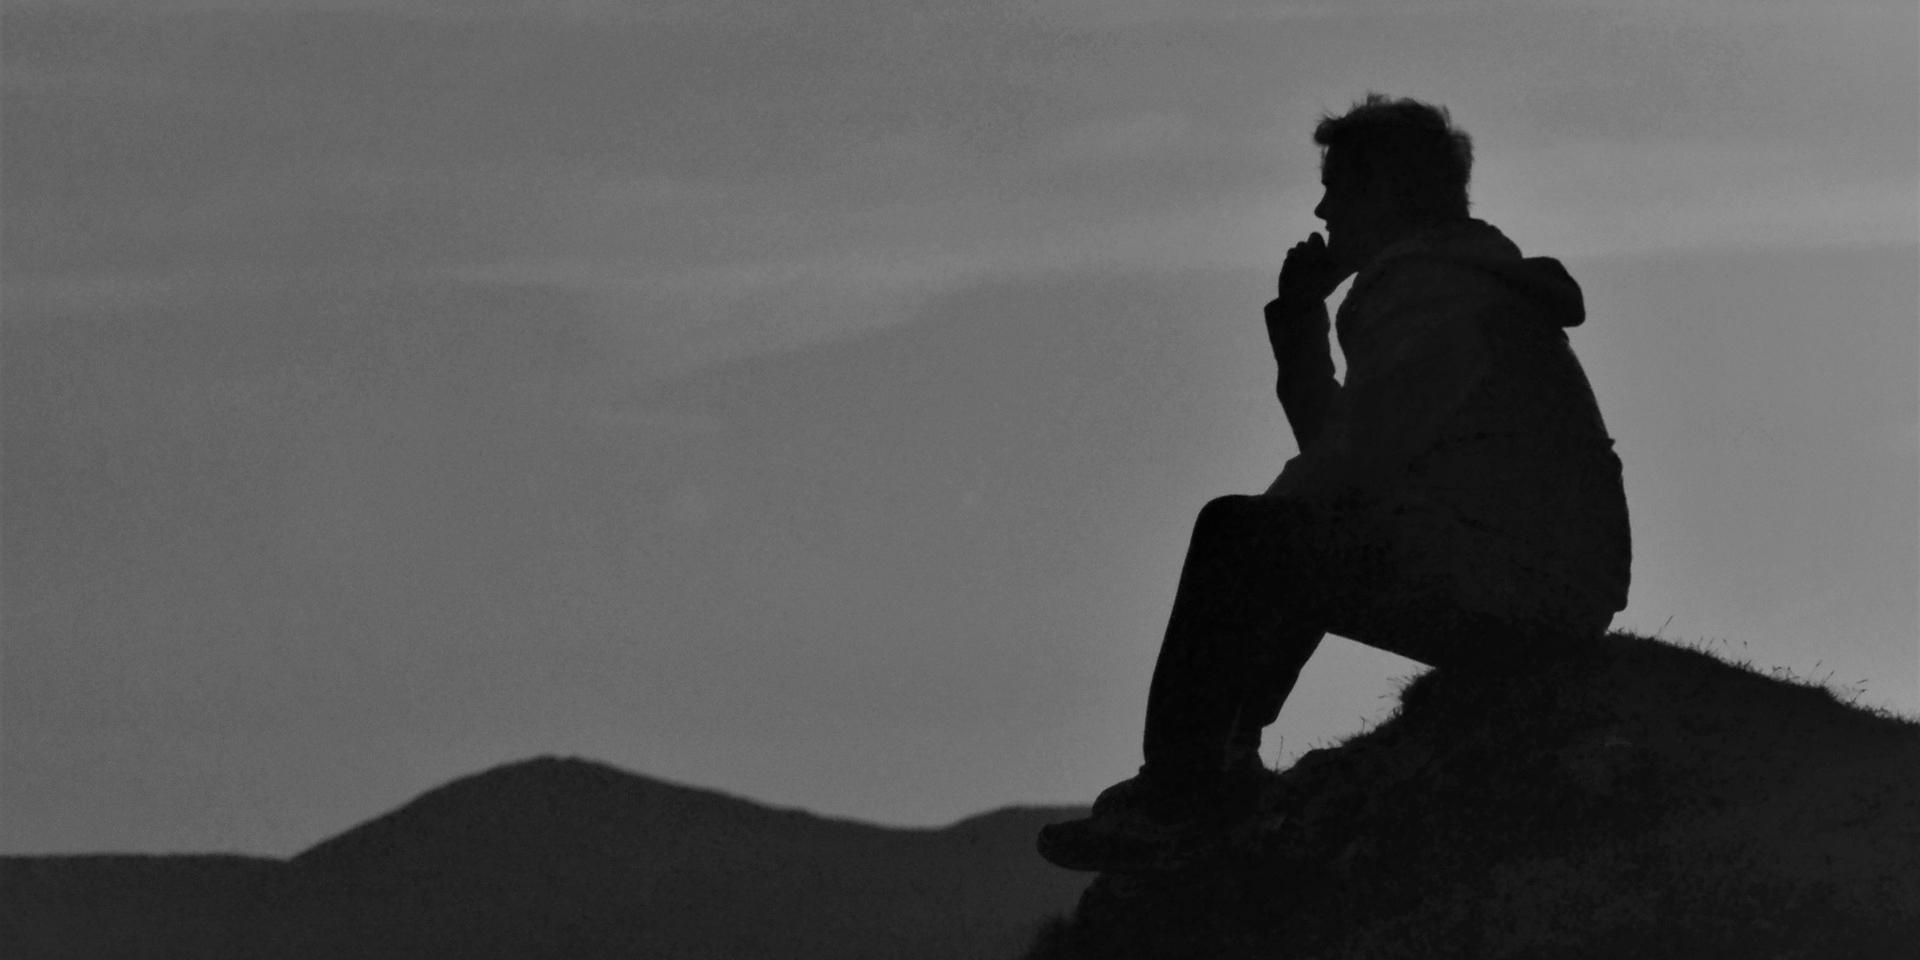 a man sitting on a hill and thinking